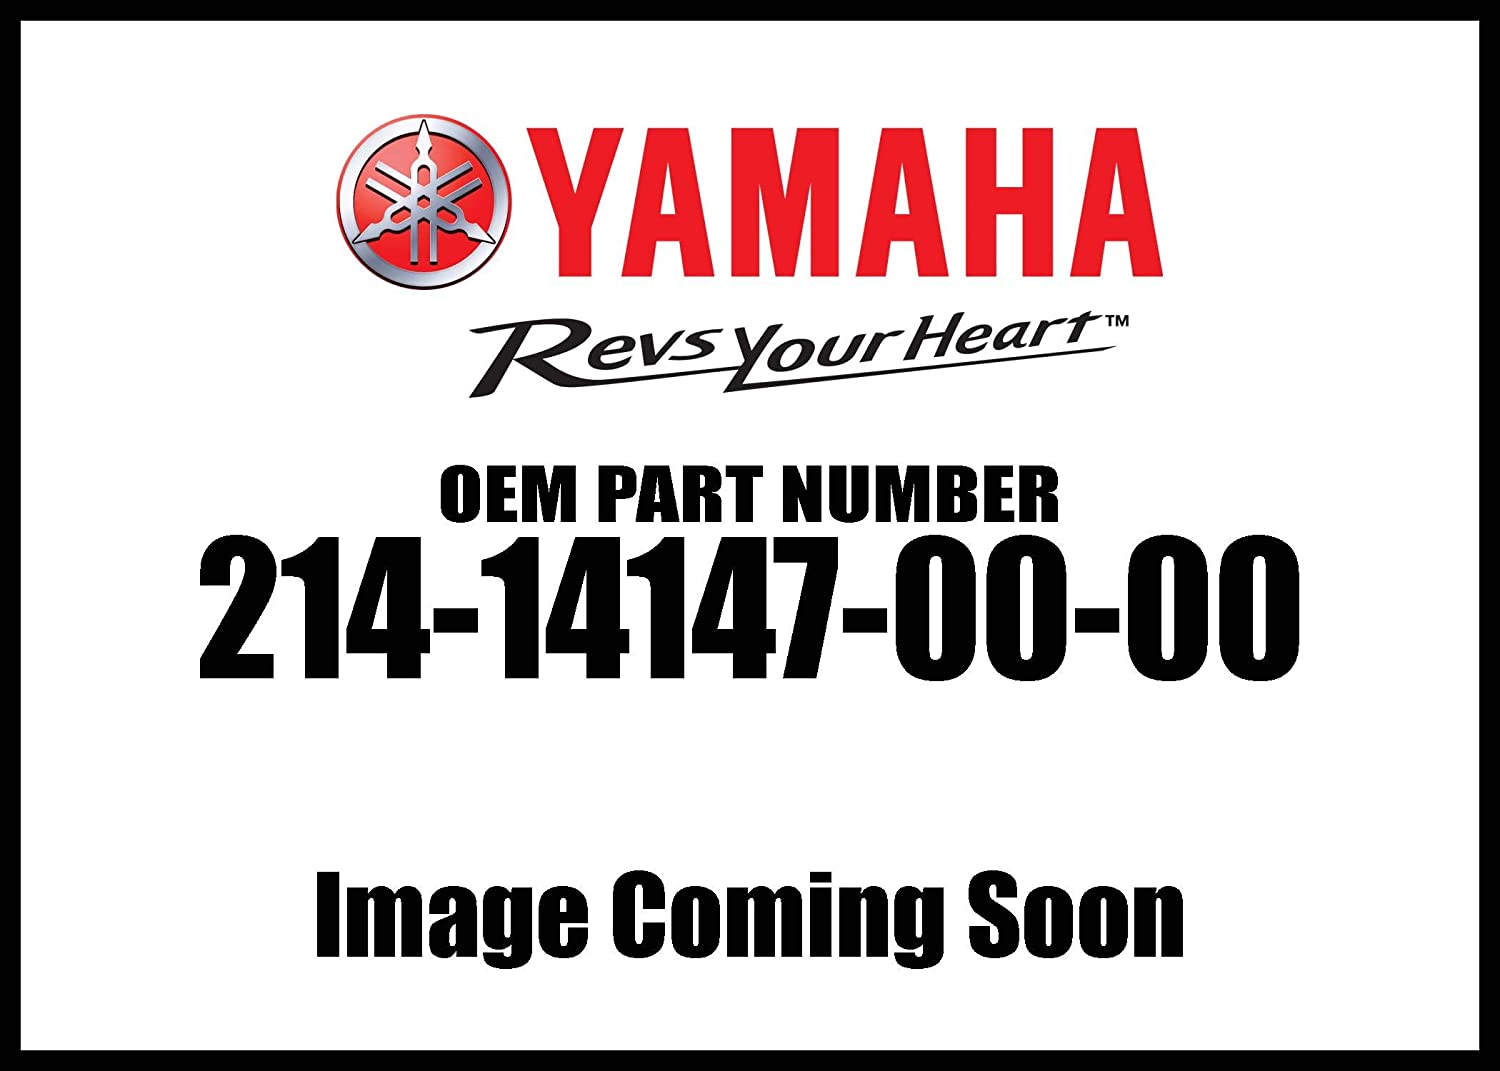 Yamaha 214-14147-00-00 O-RING; 214141470000 , 214-14147-00-00, 3Y1-14561-00-00